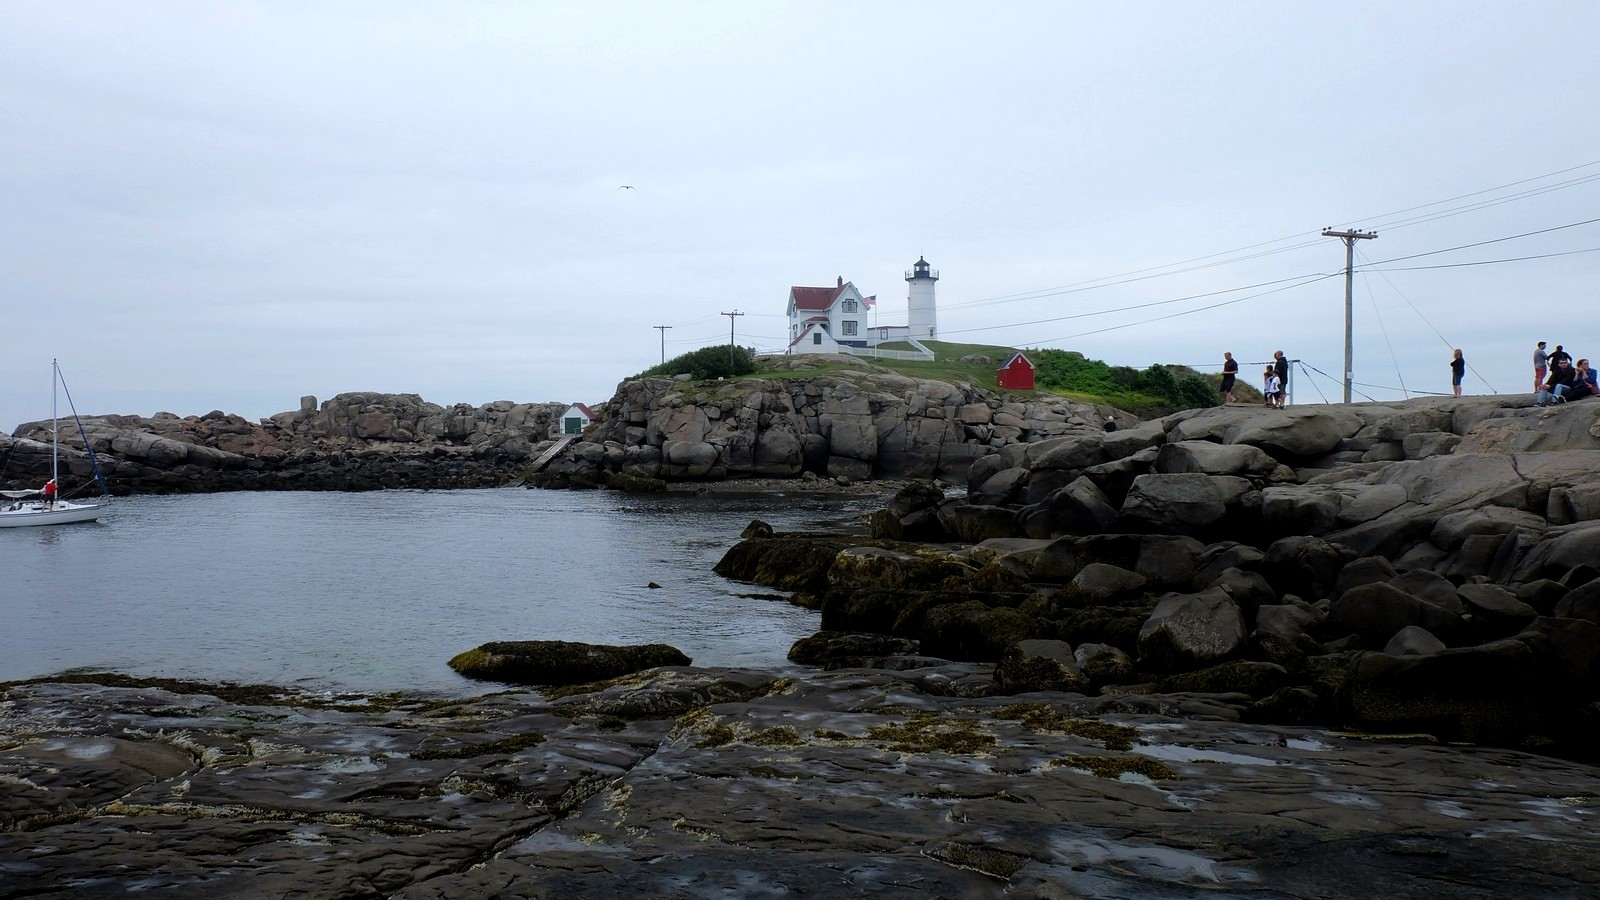 Nubble Light, York, Maine, USA